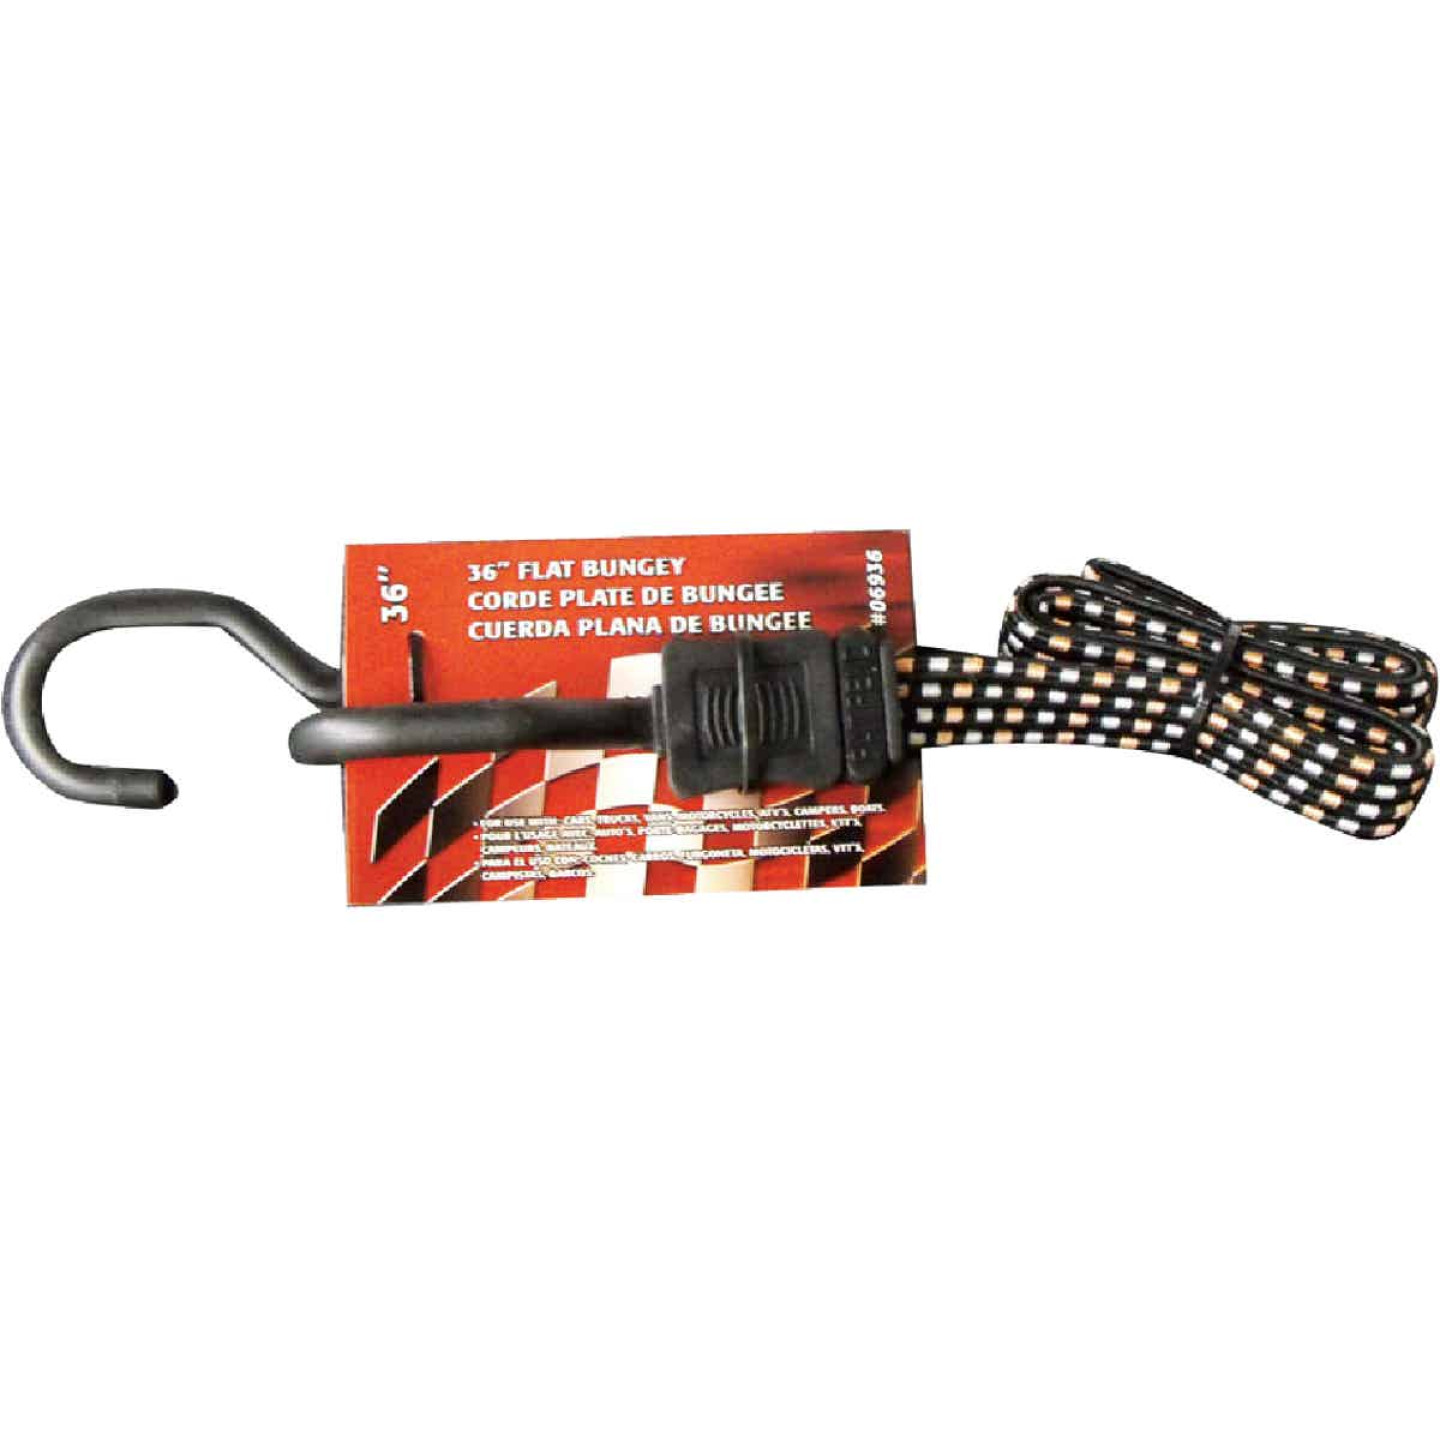 Erickson 3/4 In. x 36 In. Flat Bungee Cord, Black/White Image 1